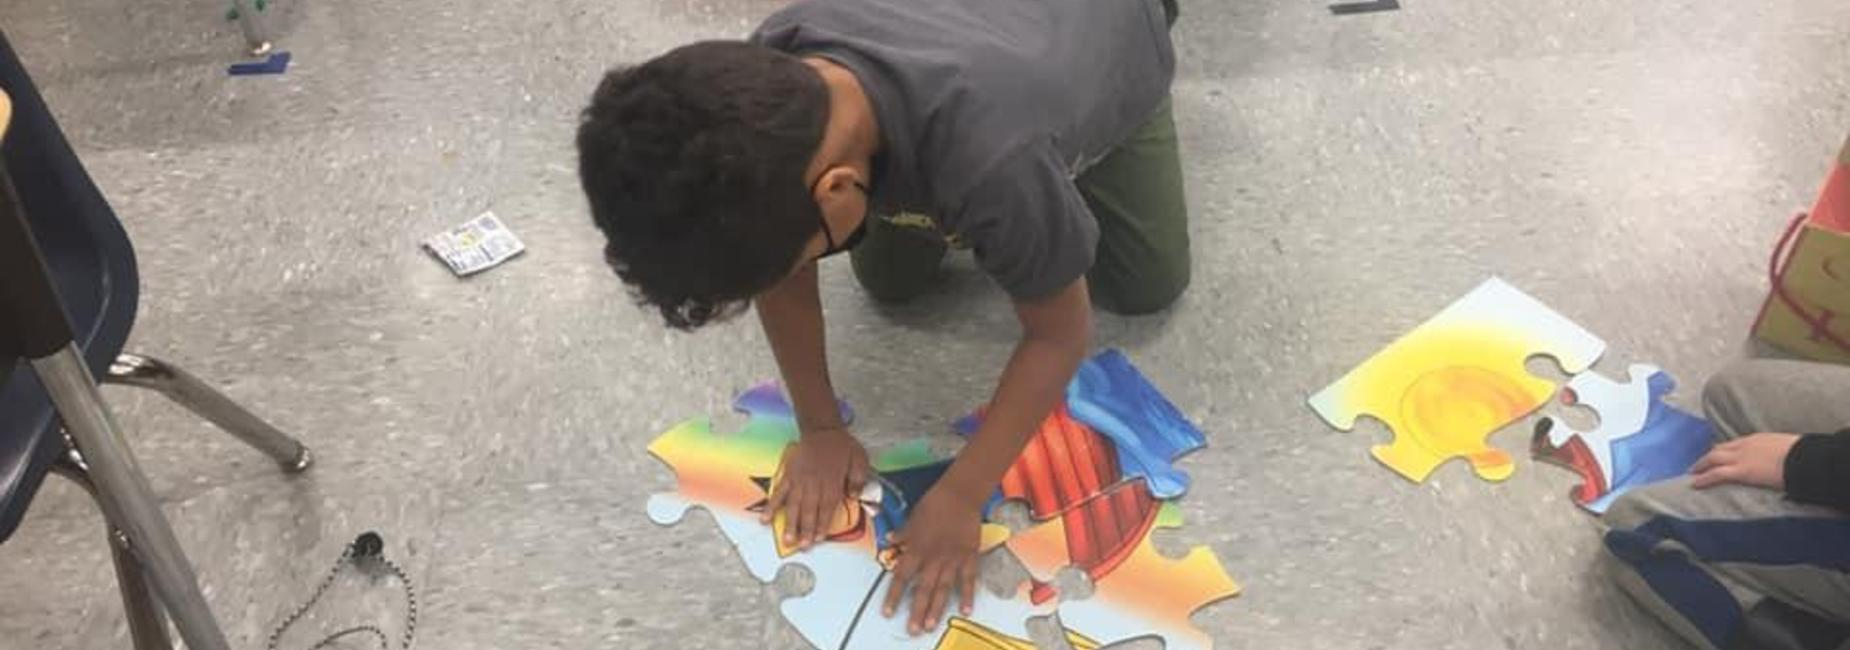 a student plays